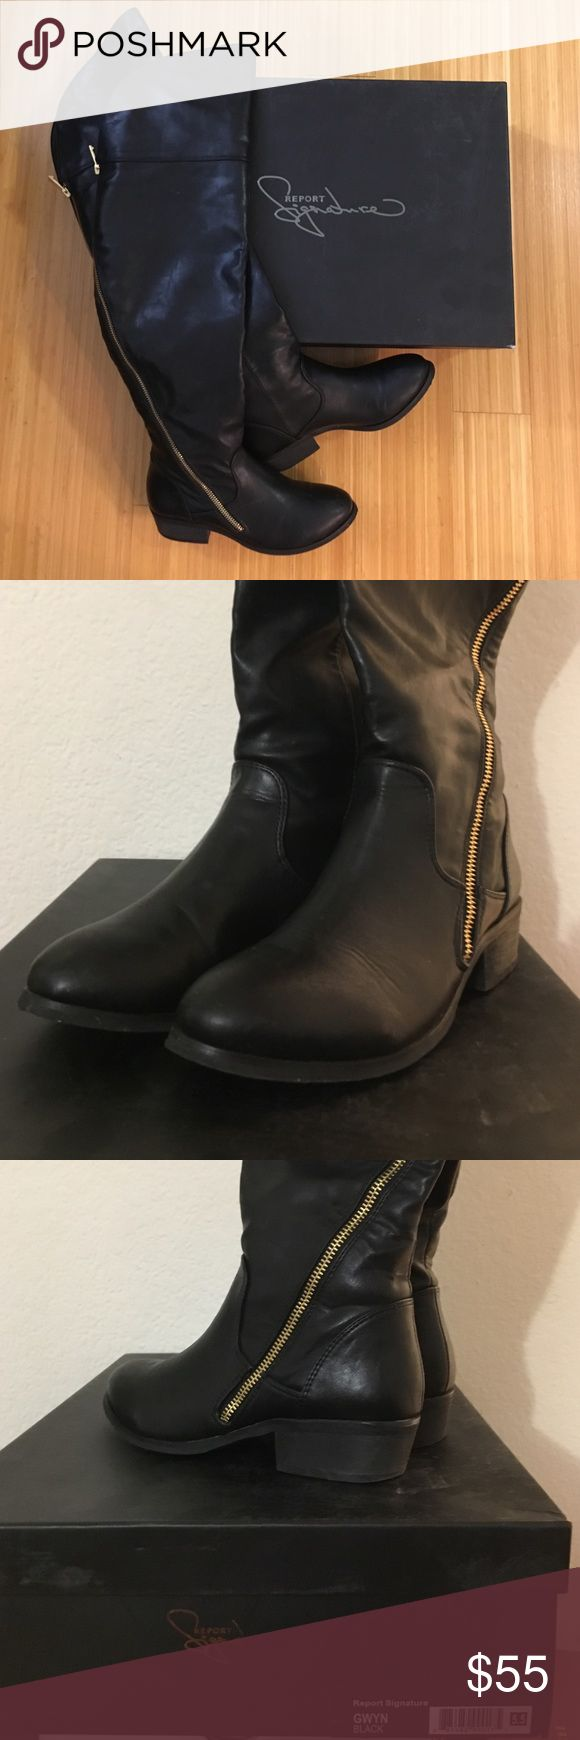 """Report Signature Gwyn Over The Knee Boot- Size 5.5 Report Signature Gwyn Over The Knee Boot. Unique long zipper trailing from top to bottom.  Size: 5.5 Material: supple, buttery-soft vegan leather upper adorned with a sleek asymmetrical zipper that wraps the leg for a rich, edgy vibe and easy on/off. Heel Height: 1.25"""" Shaft: 23"""" from arch Circumference: 15"""" Condition: Excellent, worn less than 5 times. Comes with original box.  Can bundle!  View my page for more shoes. Report Signature…"""